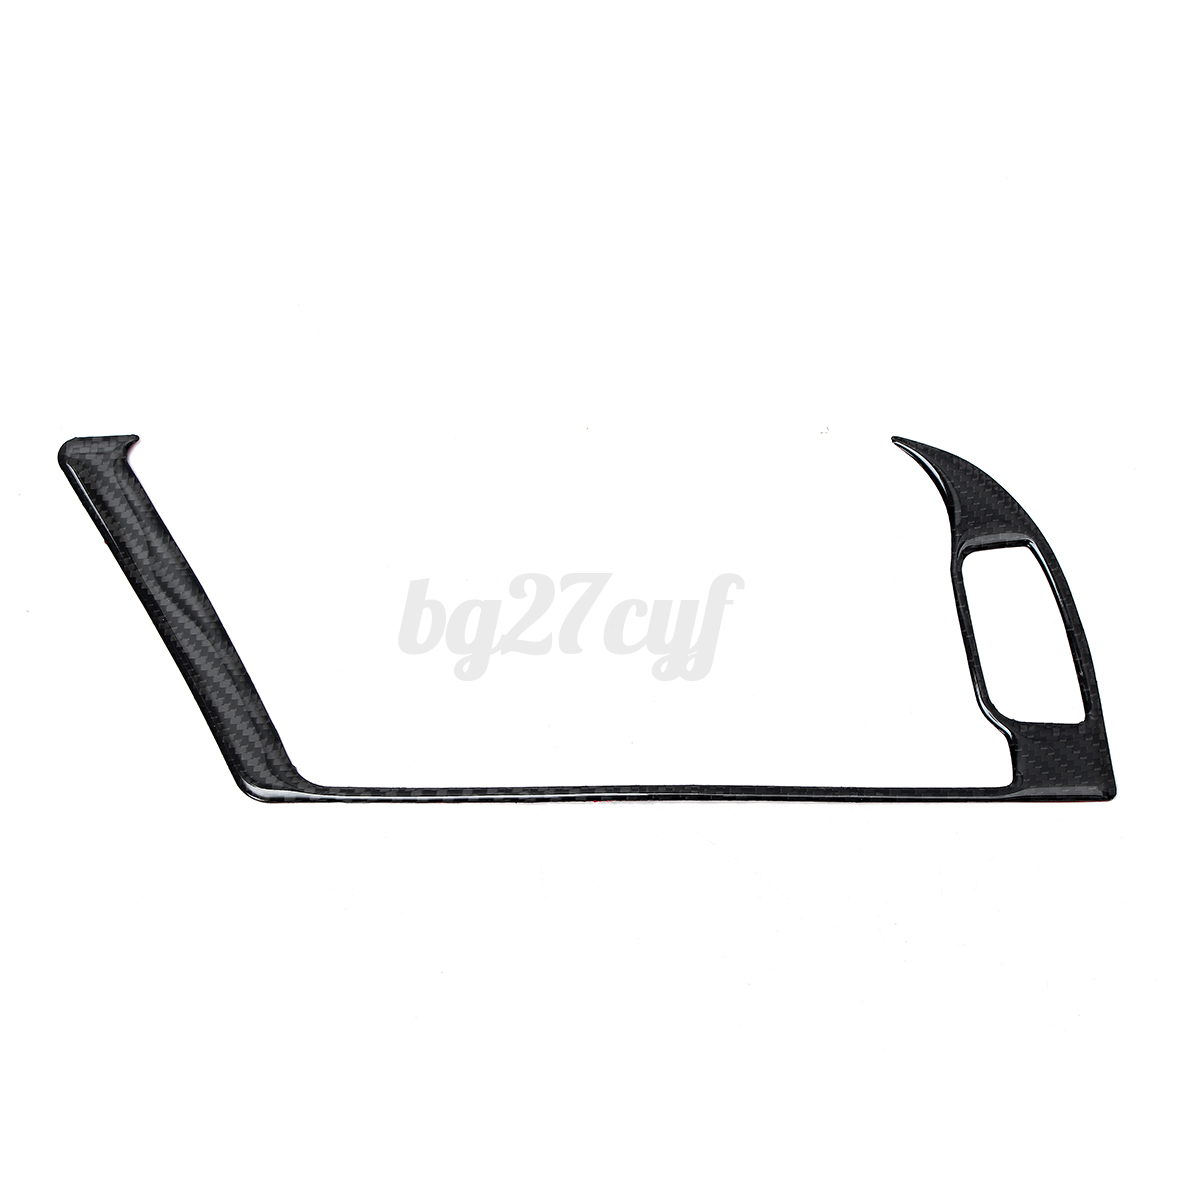 Carbon Fiber Console Warning Light Decal Cover Trim For Audi A4 B8 A5